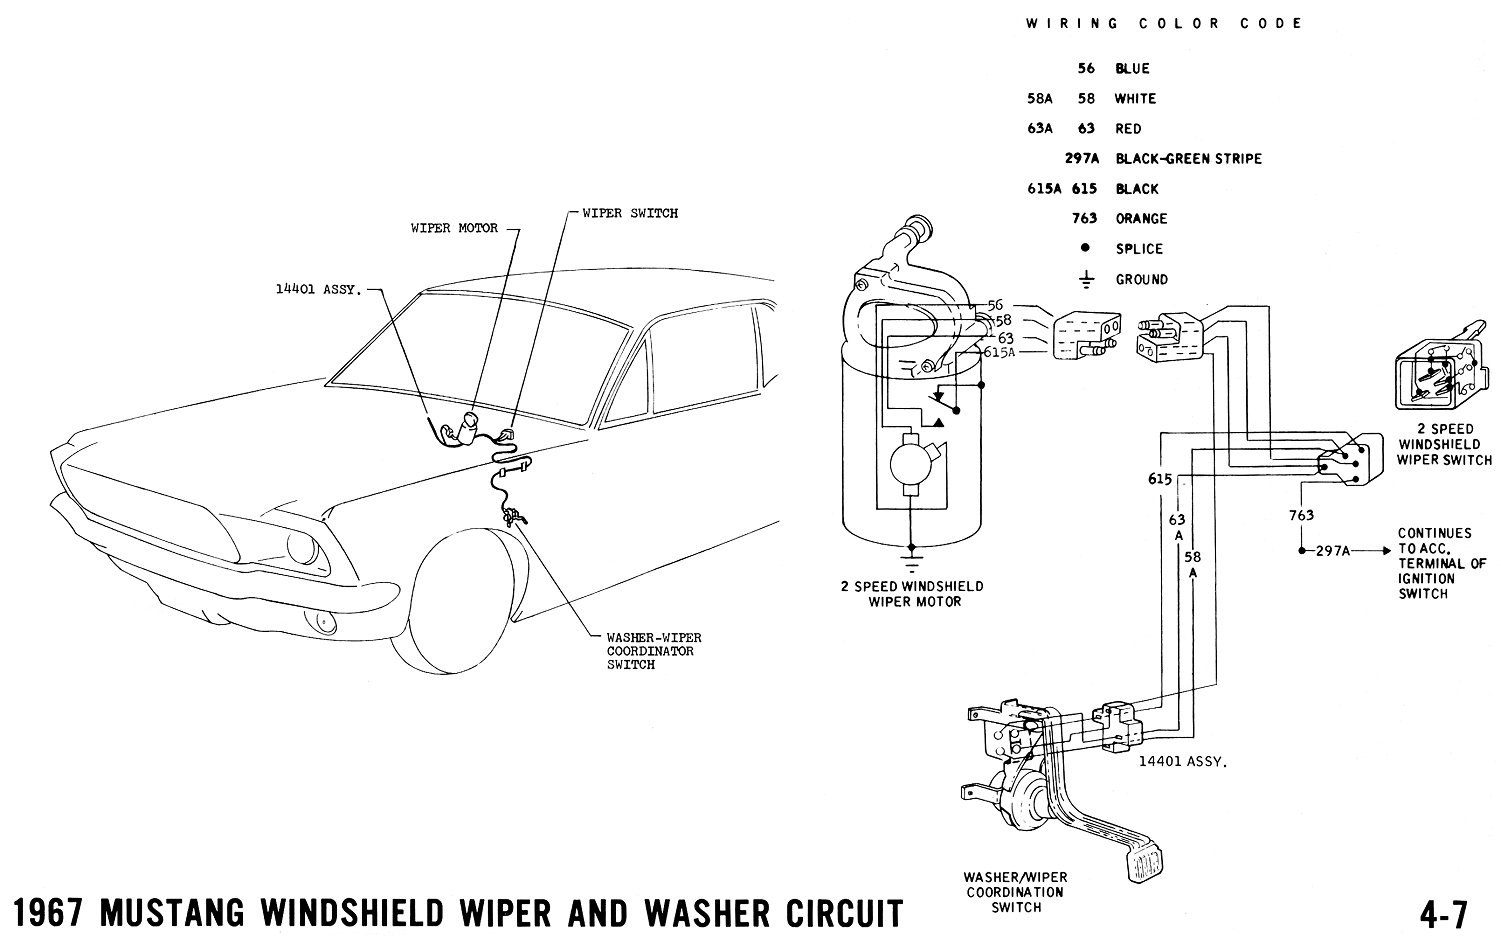 70 Chevelle Windshield Wiper Wiring Diagram Library 1970 1967 Mustang And Vacuum Diagrams Average Joe 1968 Camaro